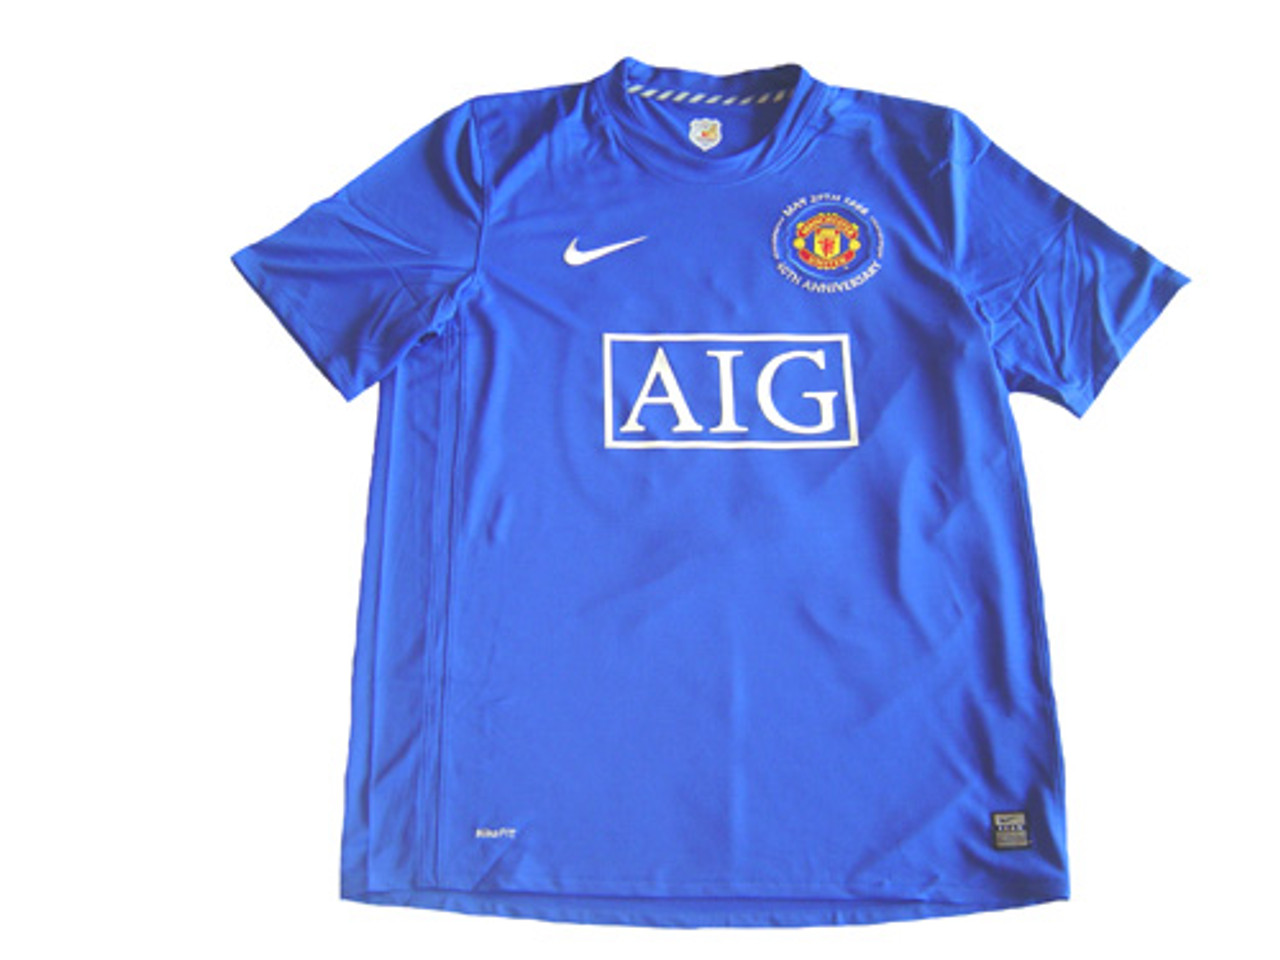 promo code c28d2 fe6ee NIKE MANCHESTER UNITED 2009 ROYAL BLUE 3RD JERSEY